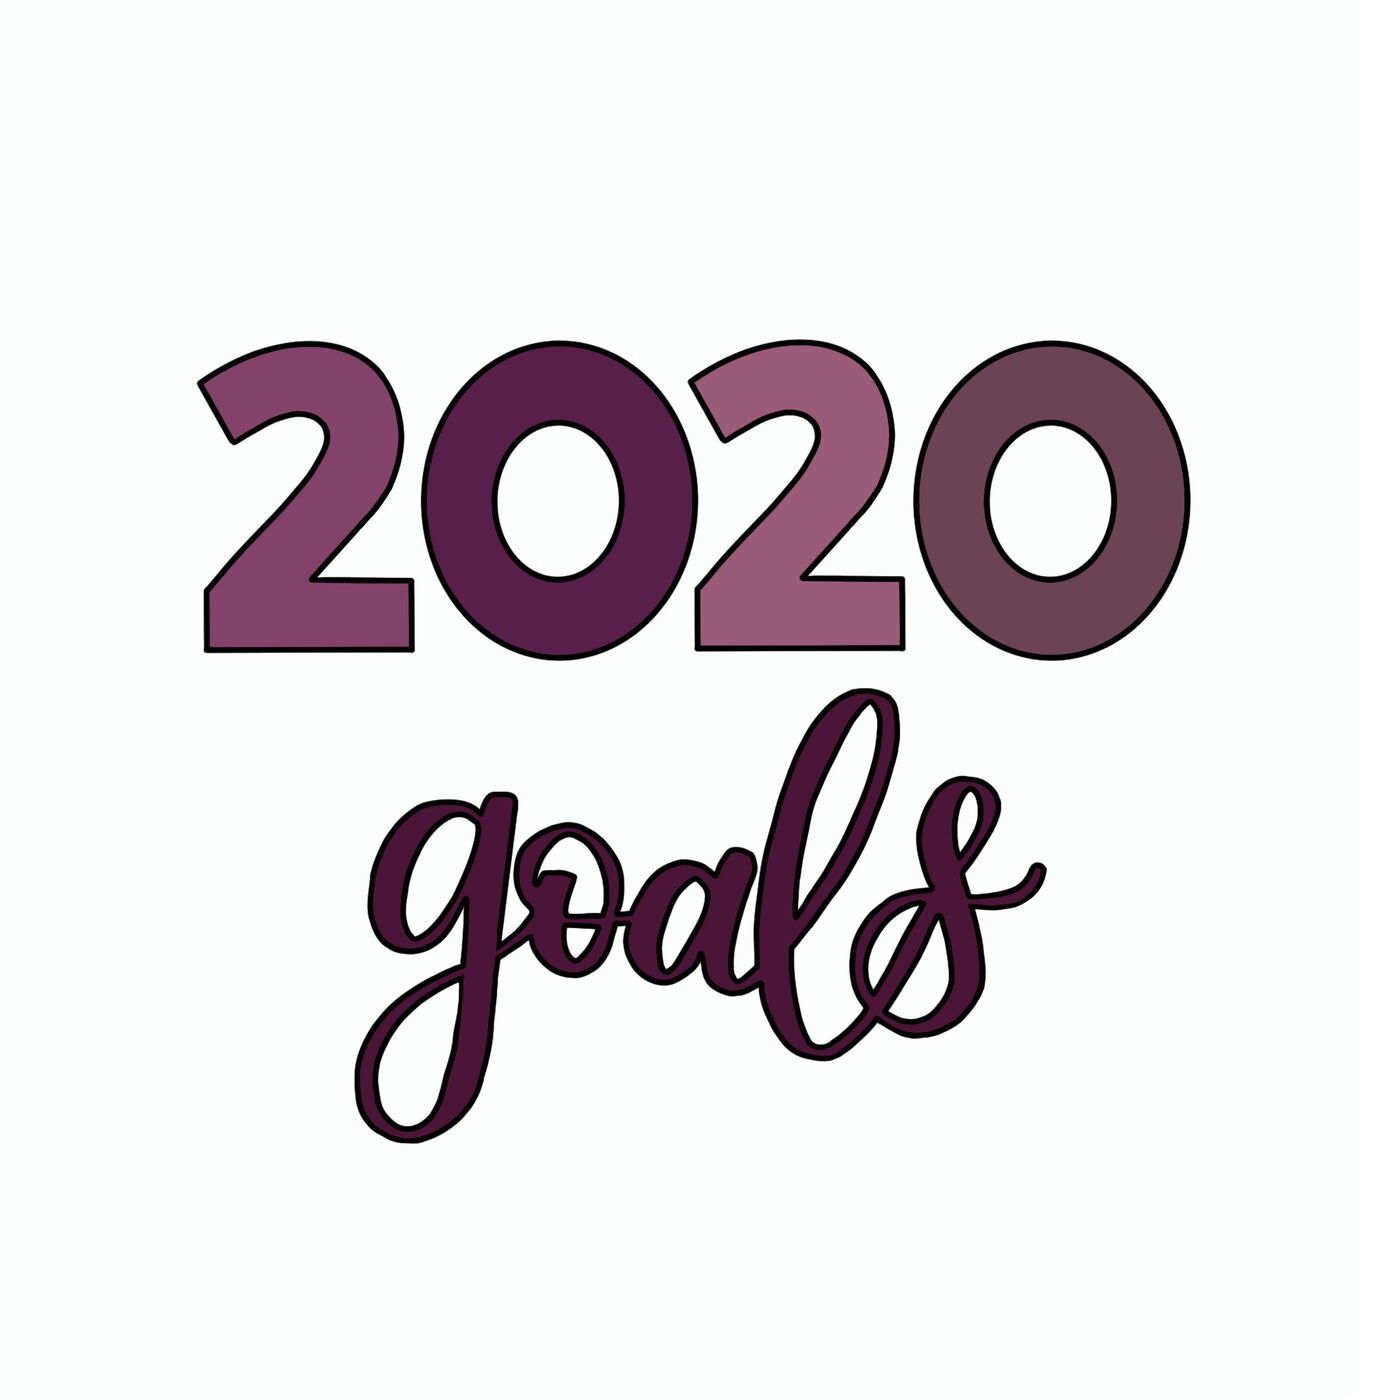 20 Spiritual Family Resolutions for 2020